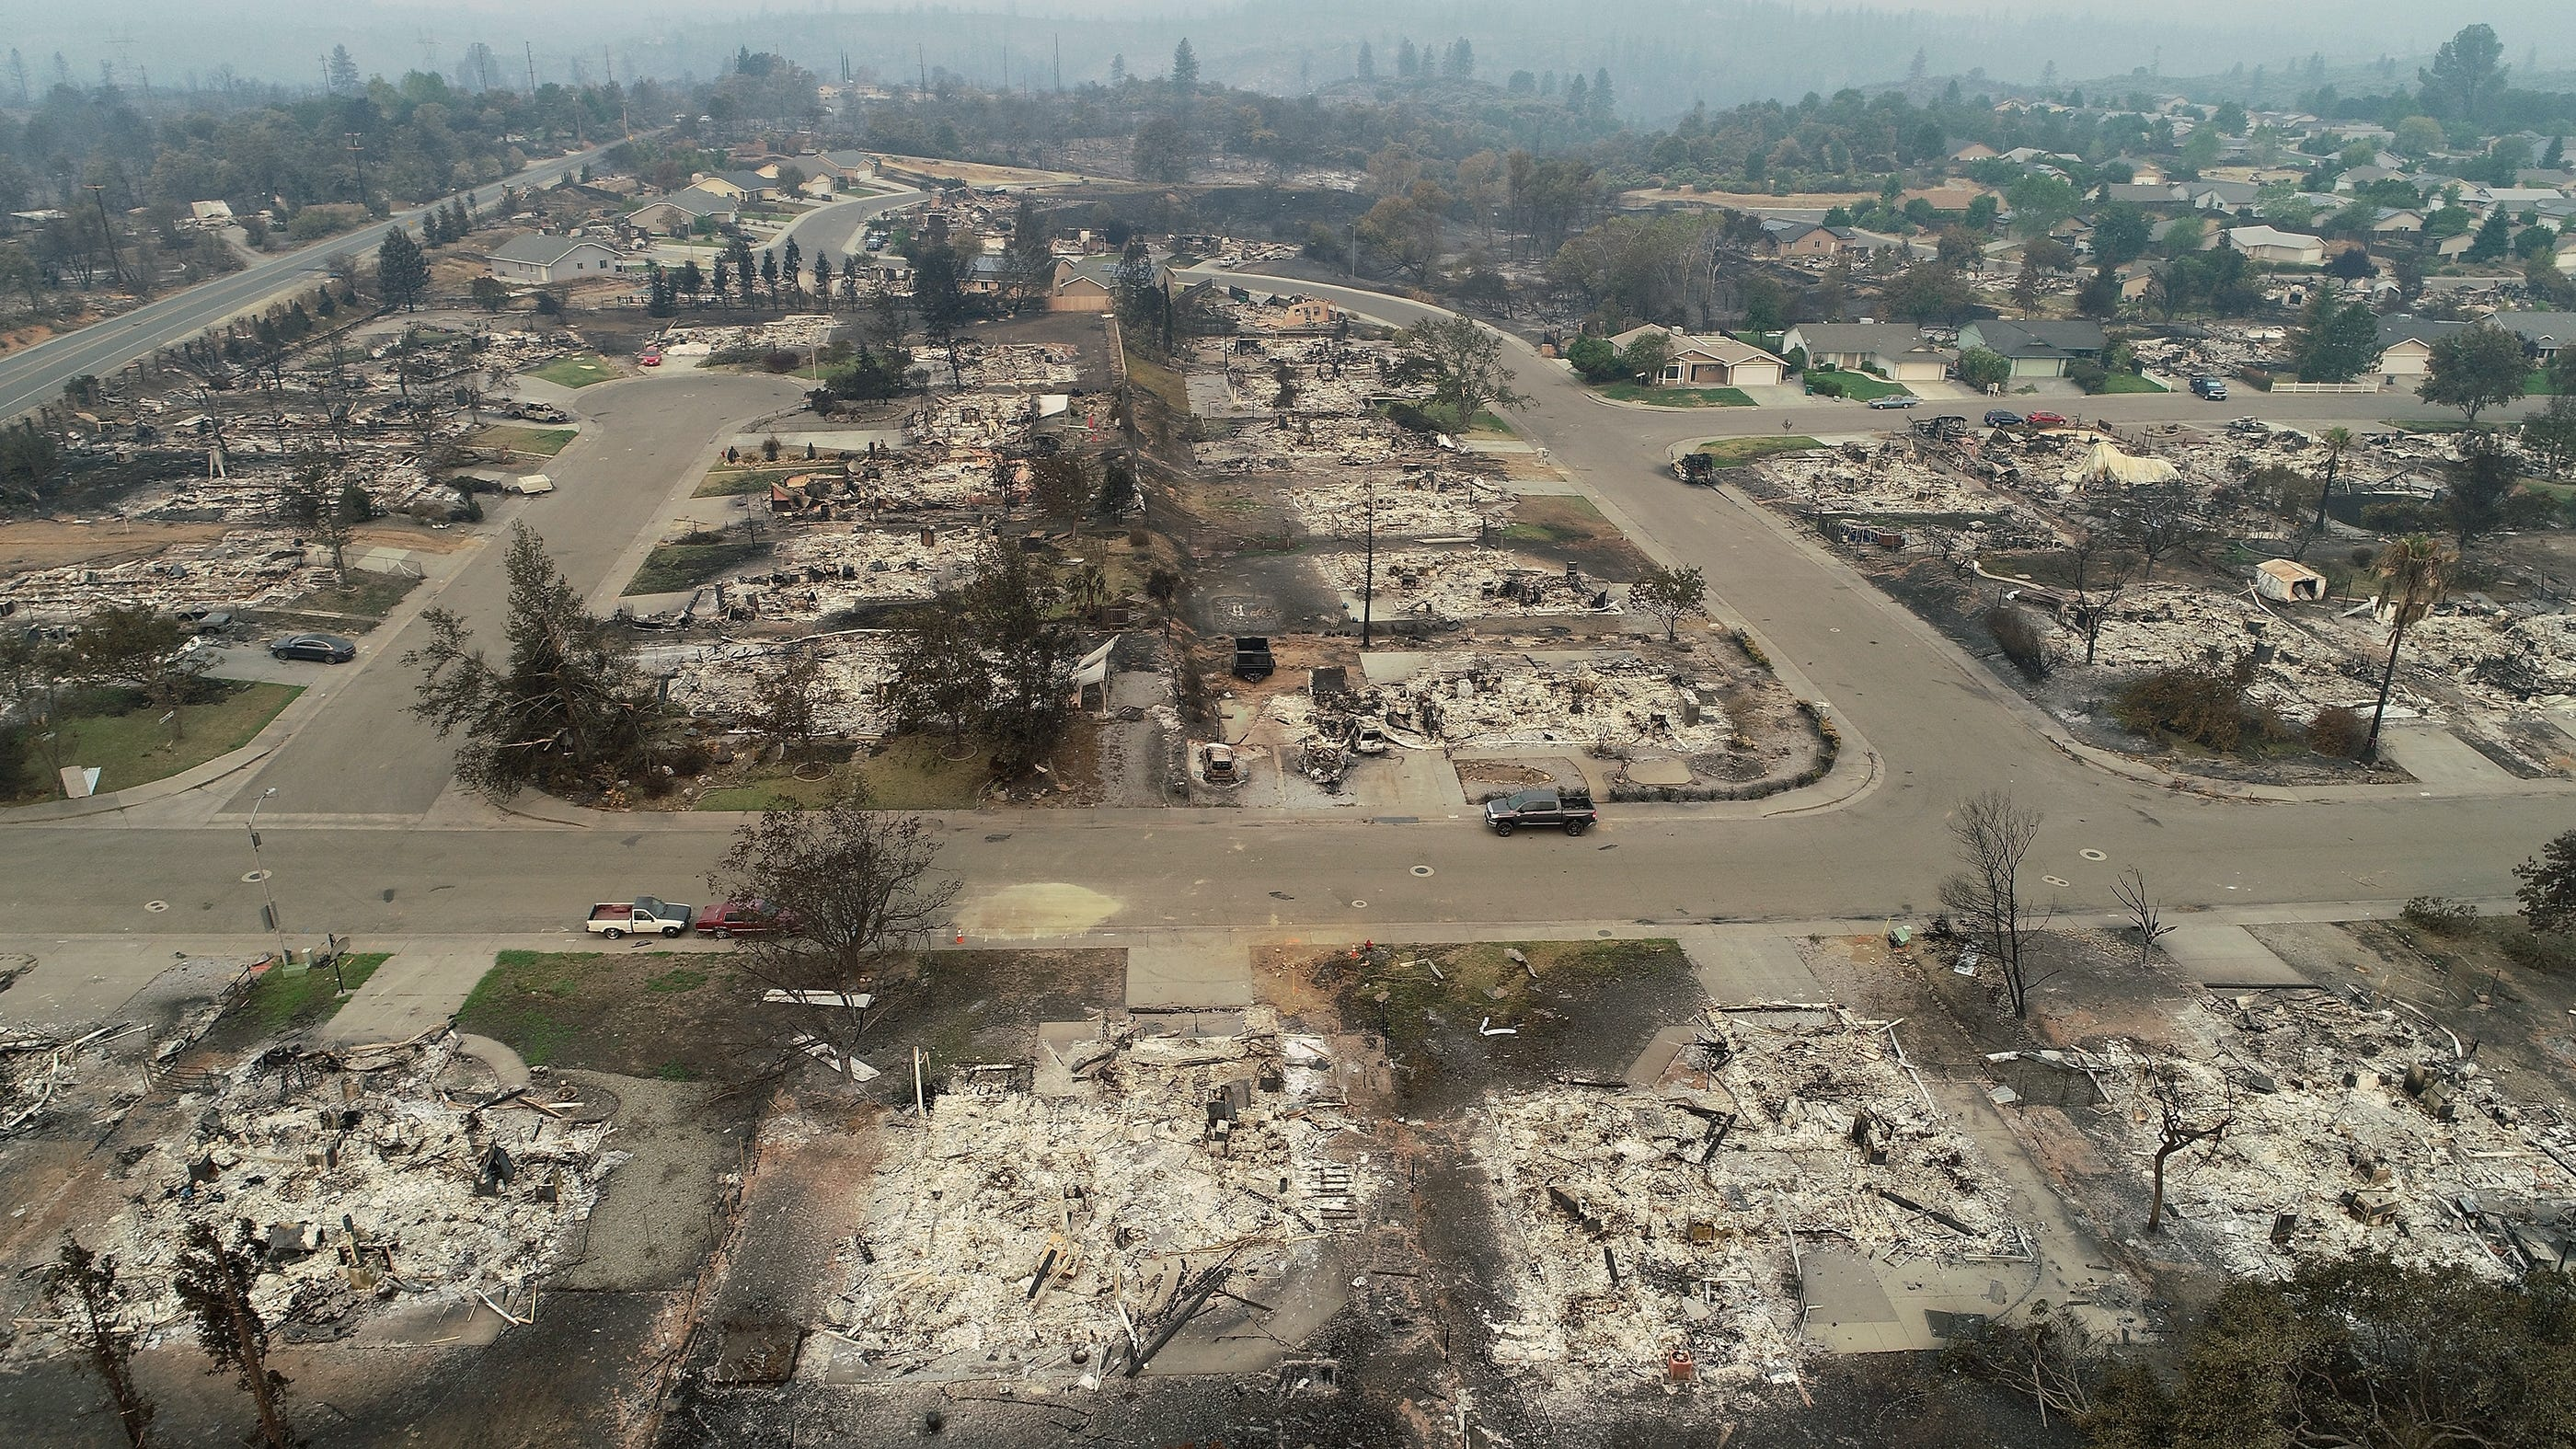 A view of the Lake Keswick Estates neighborhood on the northwest side of Redding, CA. This view from Menlo Way, with Cape Cod Drive at the right and Catalina Way to the left, looking west shows the devastation from the Carr Fire as it moved through the area.